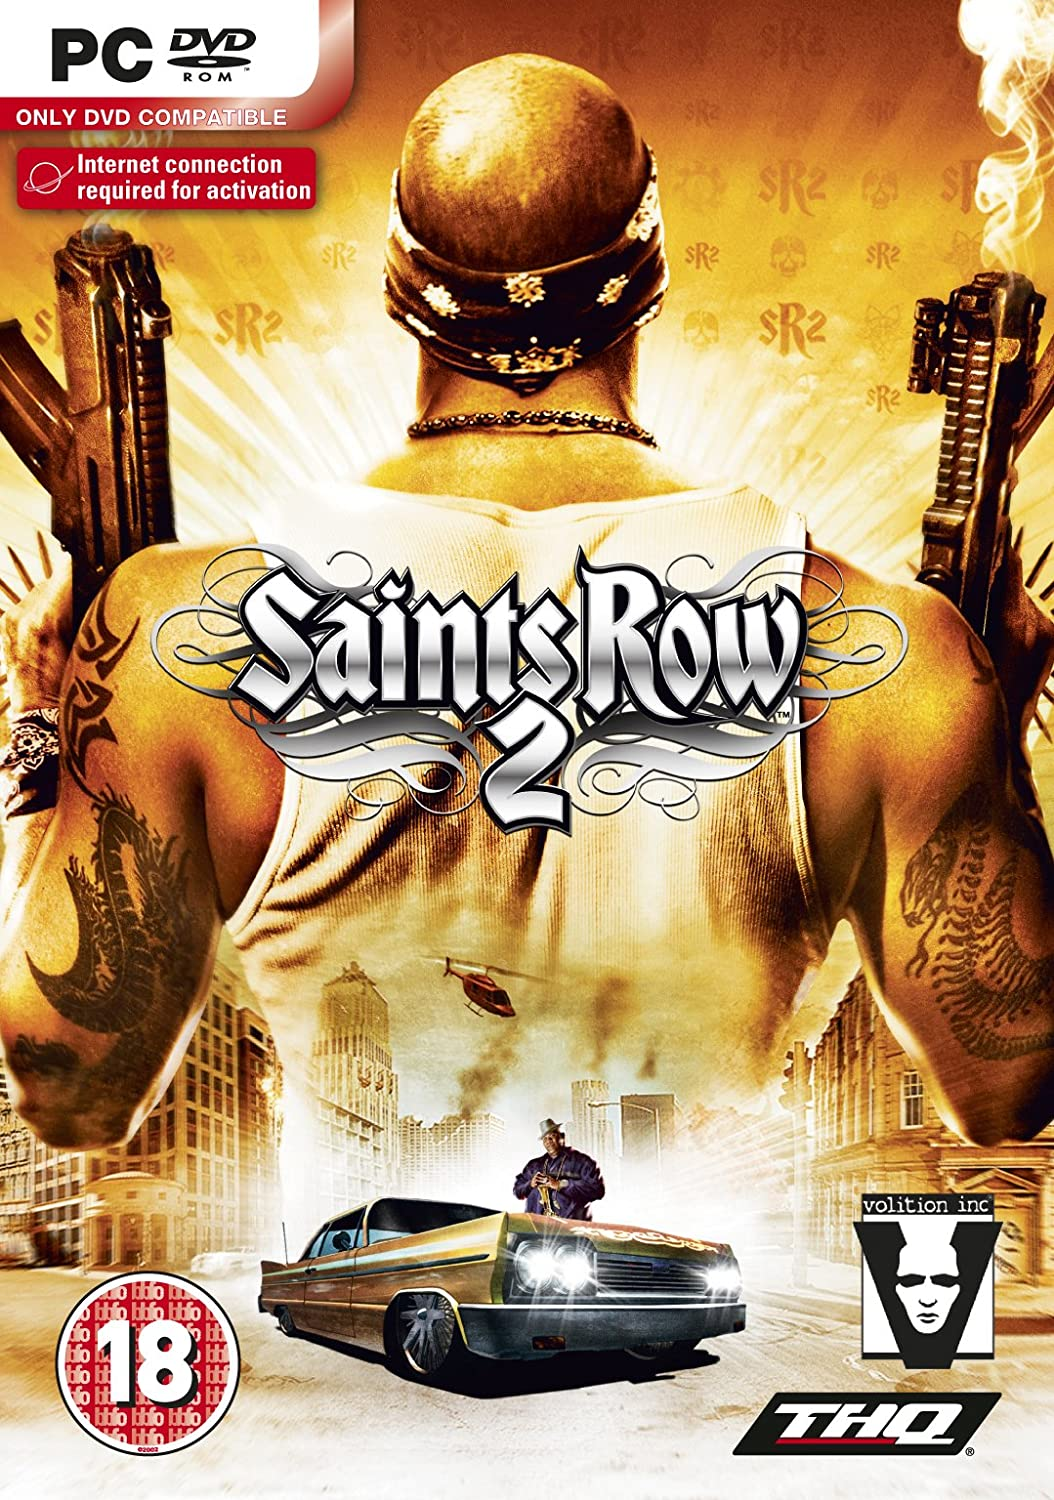 Saints Row 2 (PC DVD): Amazon.co.uk: PC & Video Games